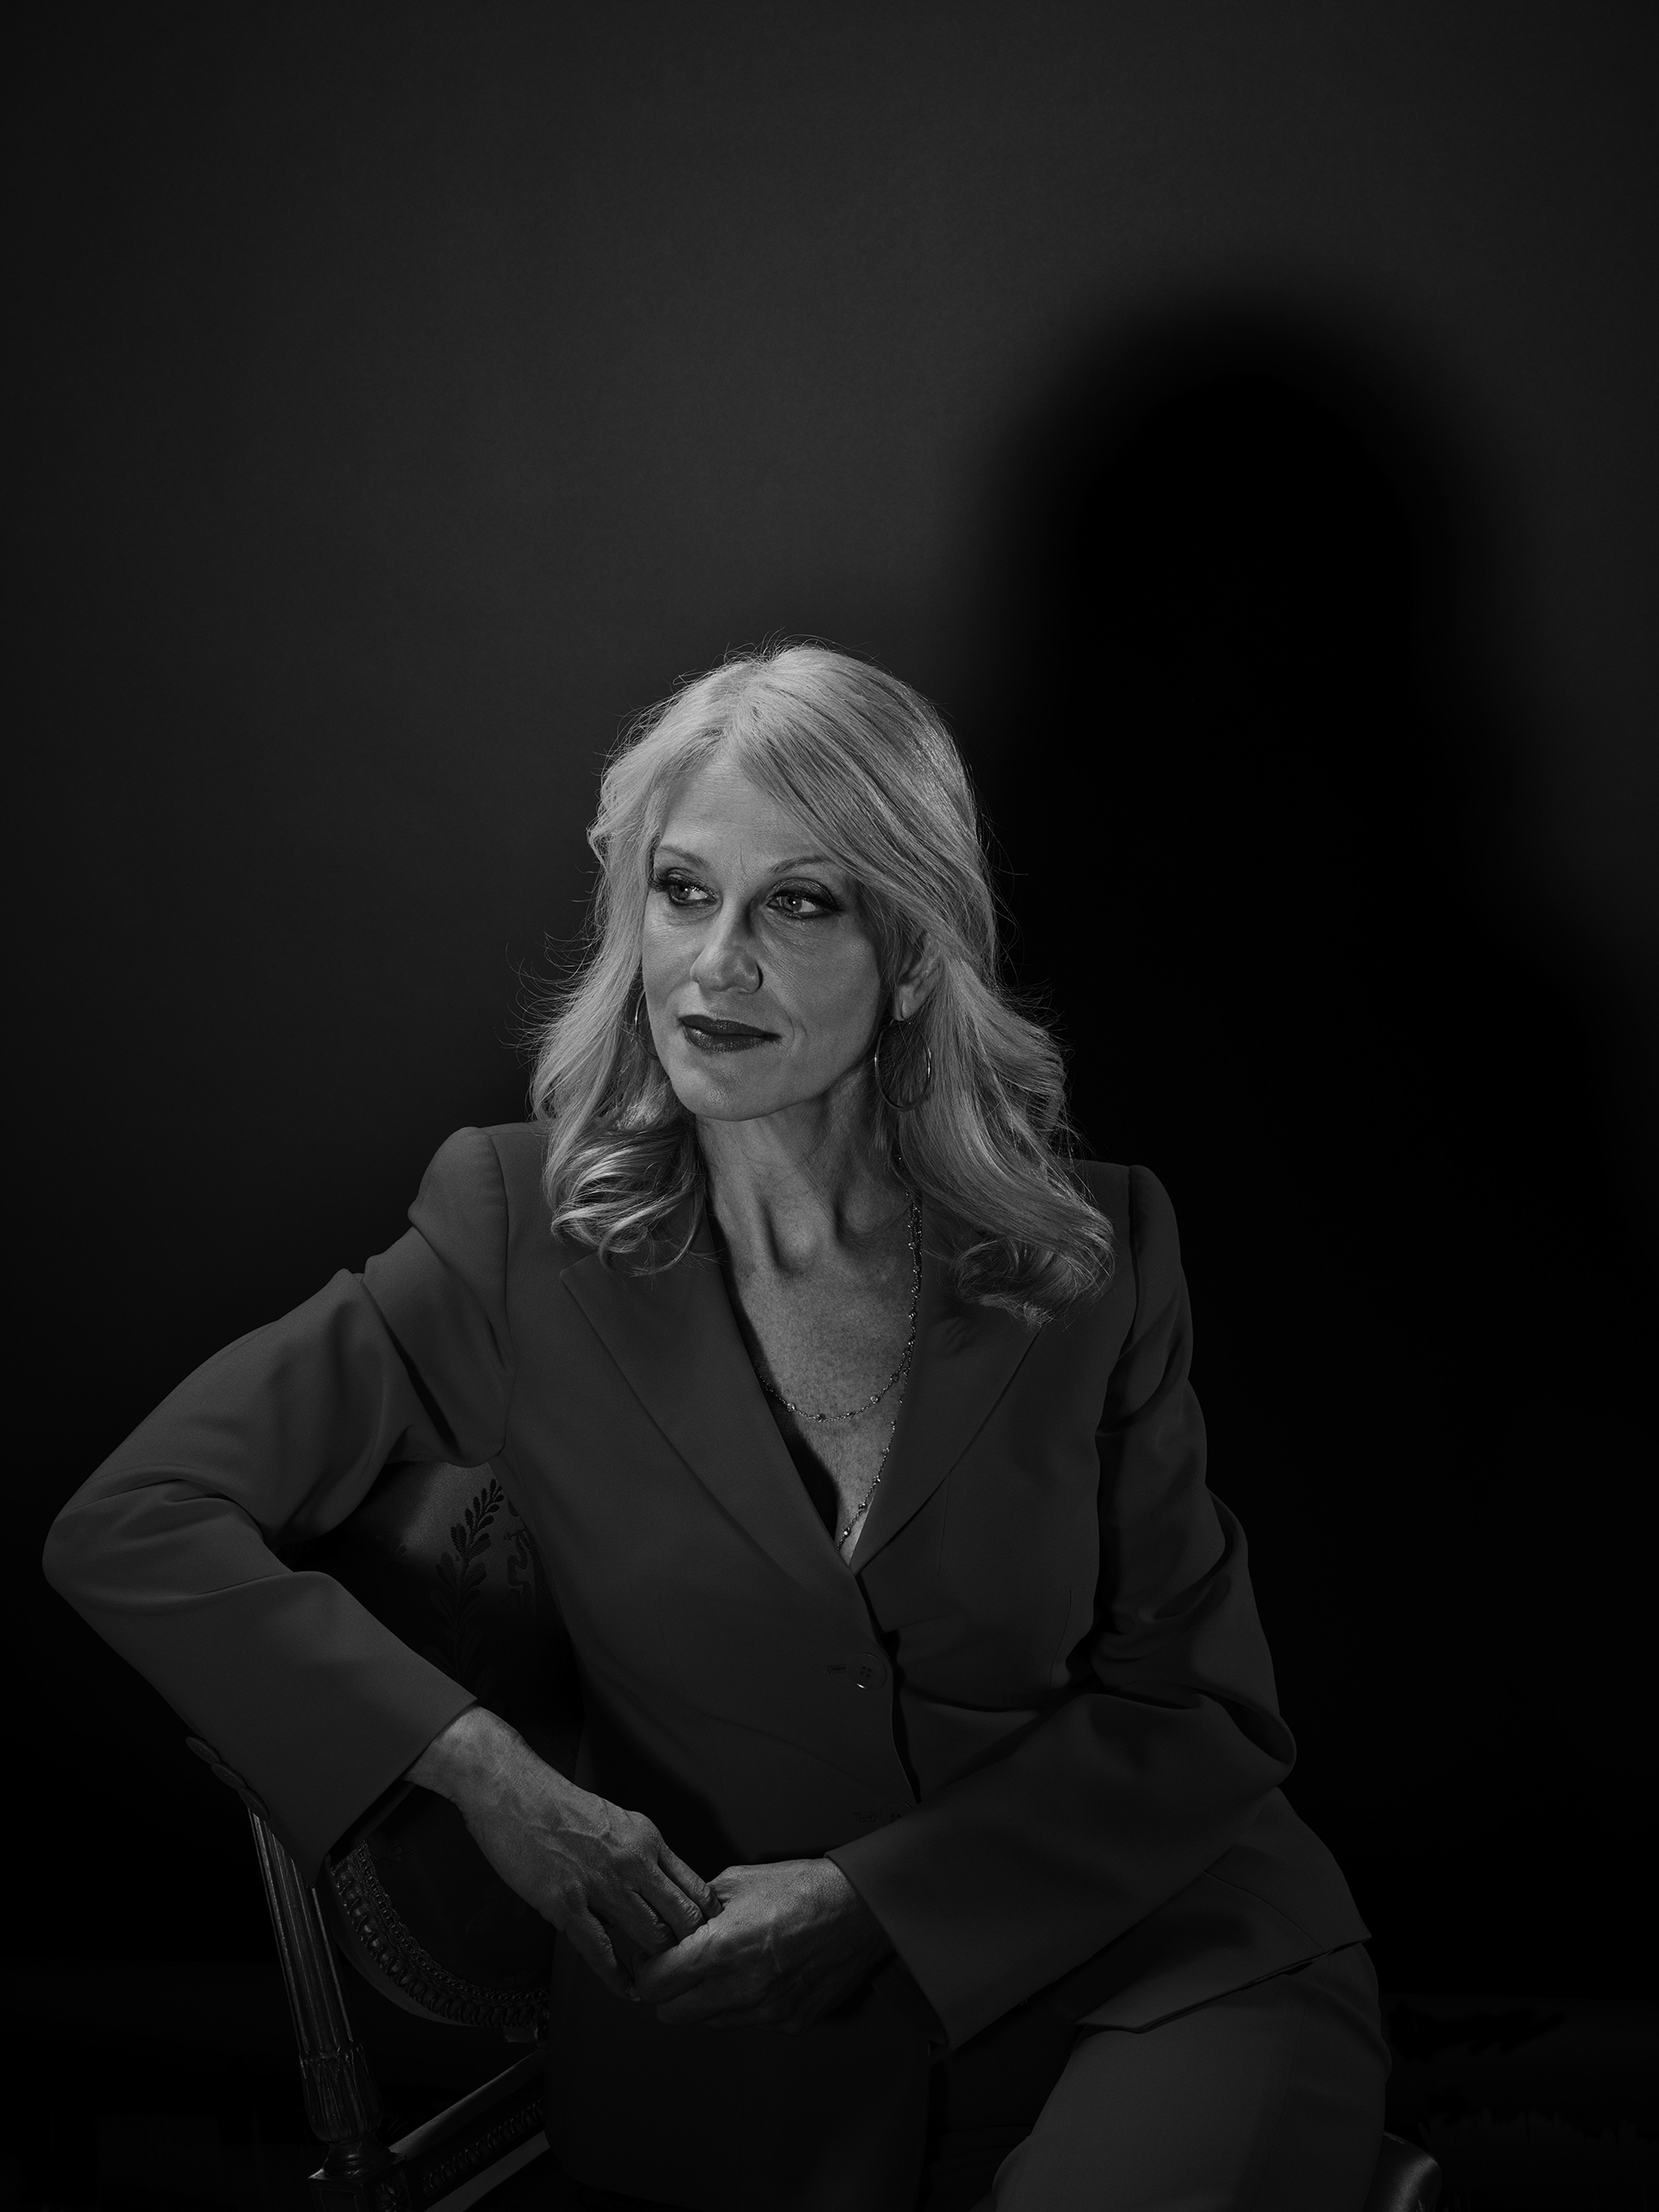 The Trump Whisperer                               A former resident of one of Trump's buildings, pollster Kellyanne Conway became his campaign manager in August. She is known for her blunt advice, sometimes through TV appearances.                               From                                 See Portraits of Donald Trump's Most Trusted Advisers